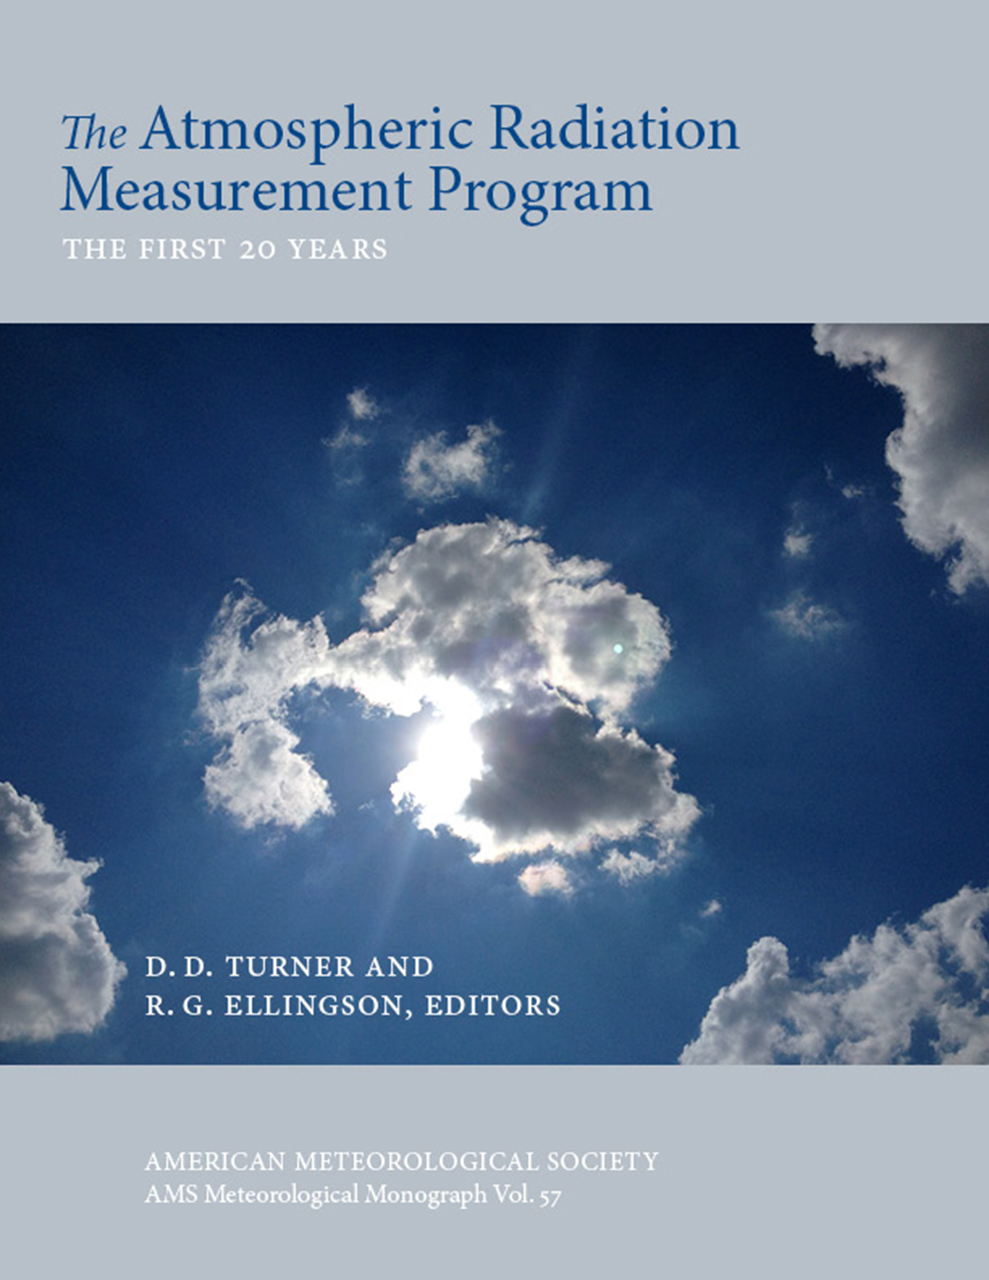 The Atmospheric Radiation Measurement (ARM) Program: The First 20 Years